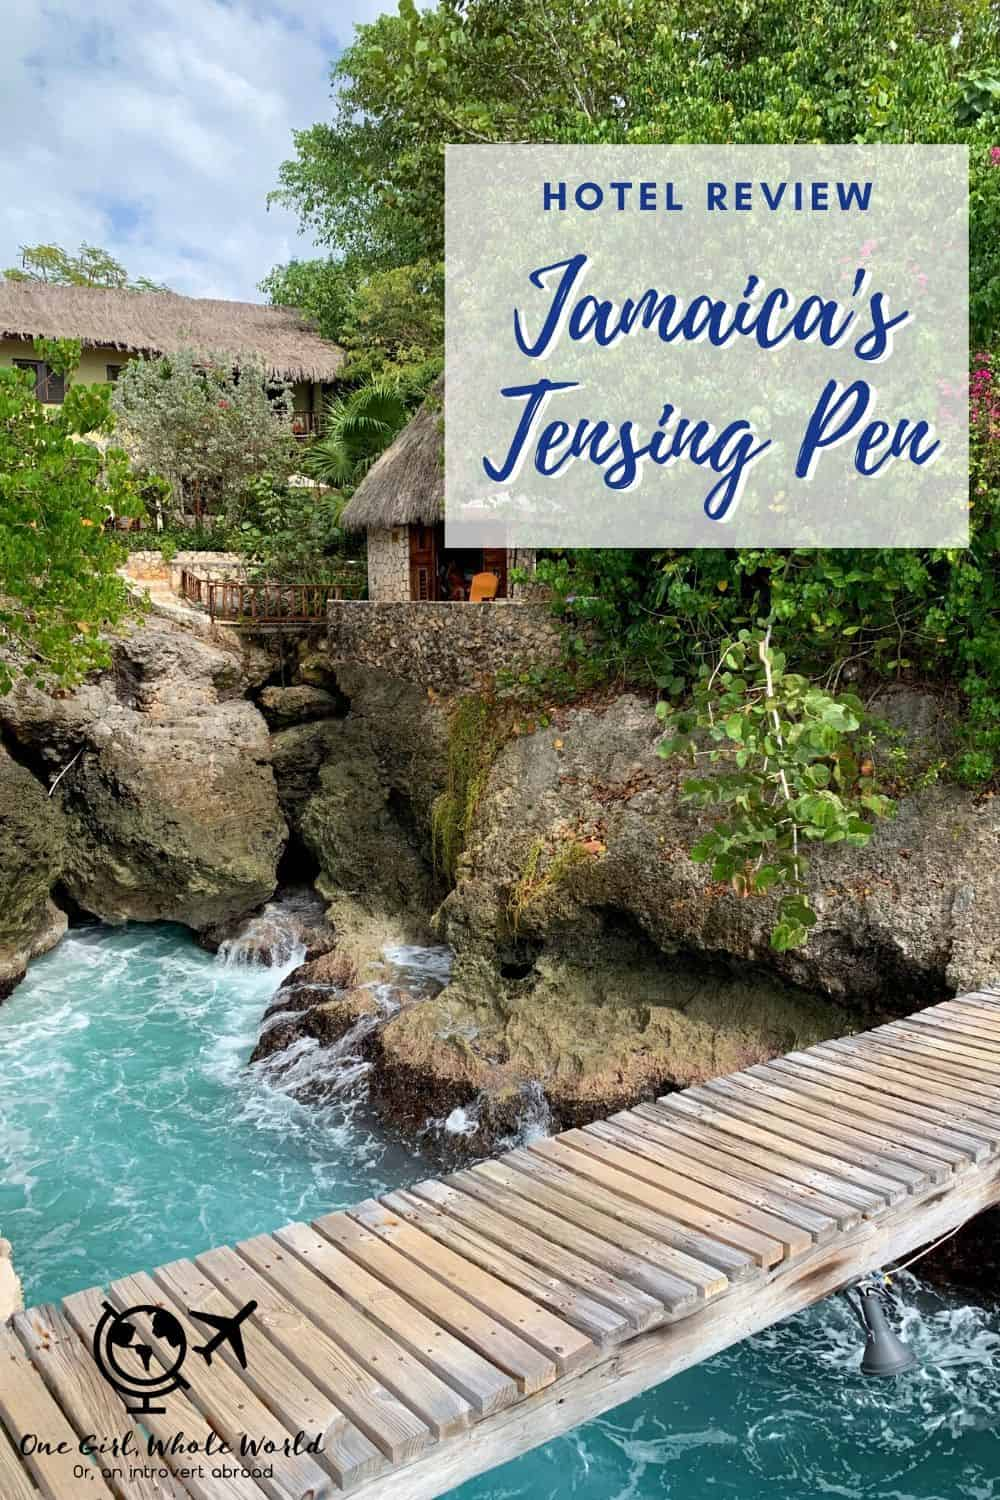 Hotel Review: Tensing Pen in Negril, Jamaica | What to expect staying at this boutique resort in Negril's West End. Perched on gorgeous cliffs, this hotel consistently makes Travel+Leisure's top hotels in the world list. I review the grounds, rooms, food, experience, and more. #caribbean #hotelreview #besthotels #jamaica